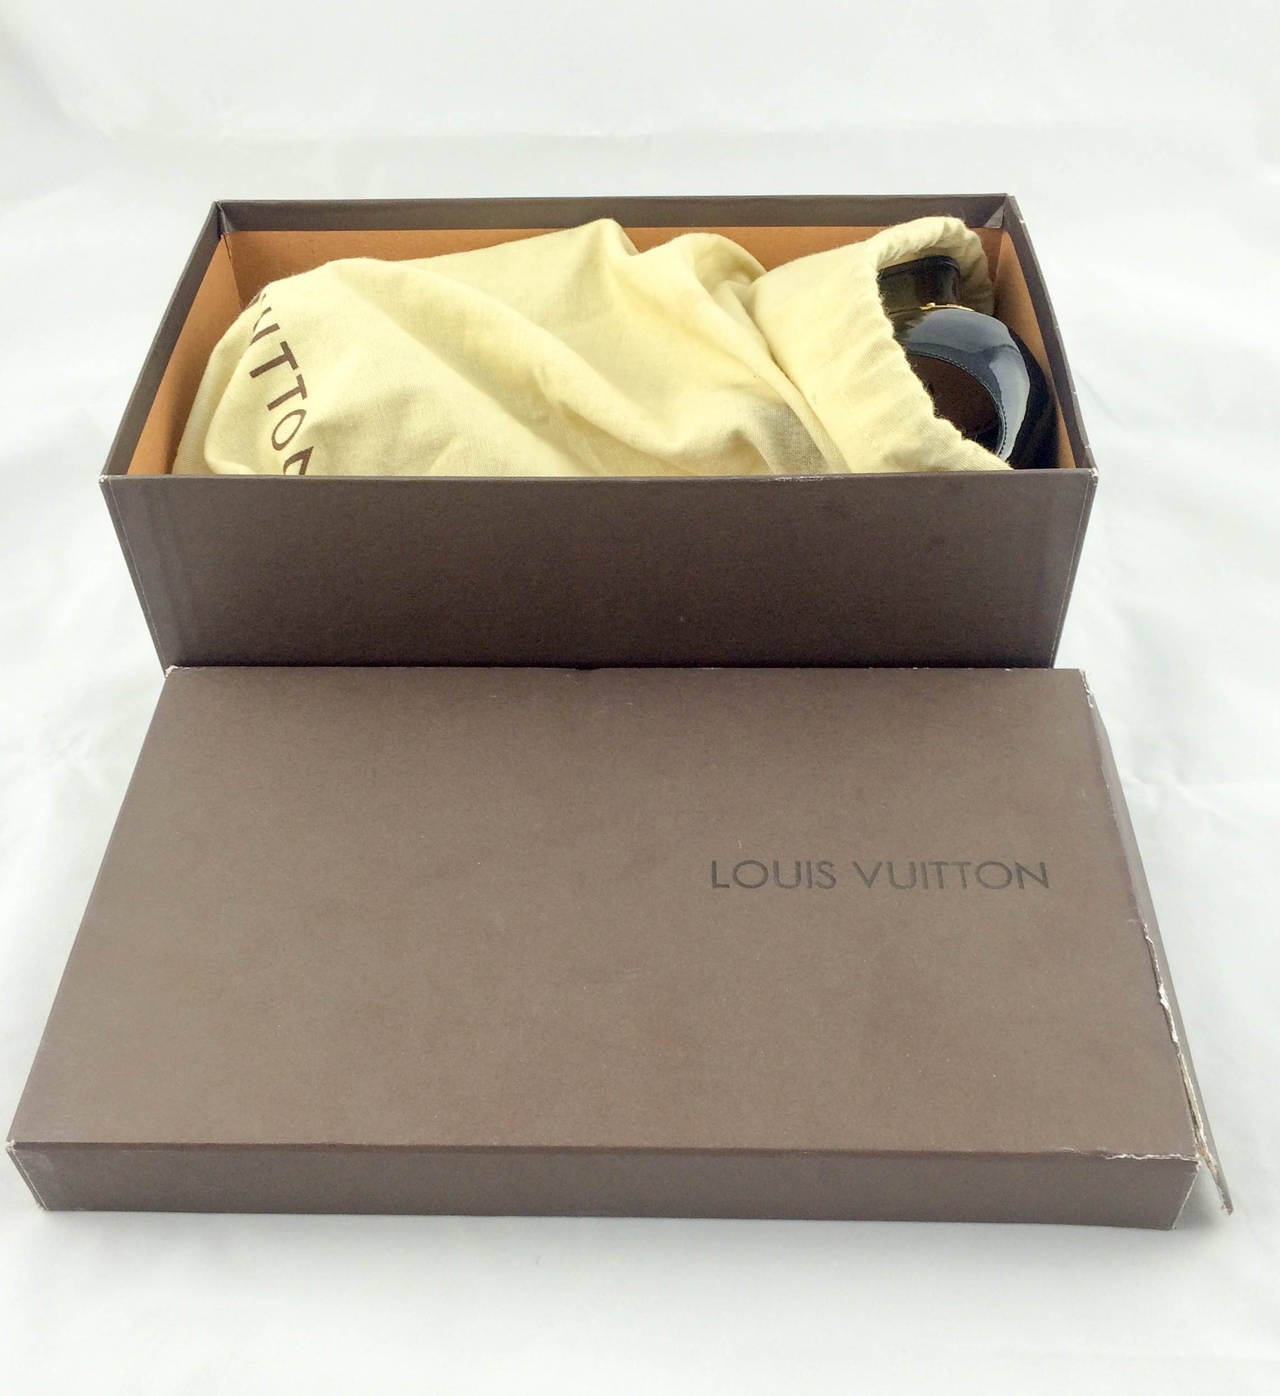 Louis Vuitton Strawberry Wedges Sandals - 2009 For Sale 5